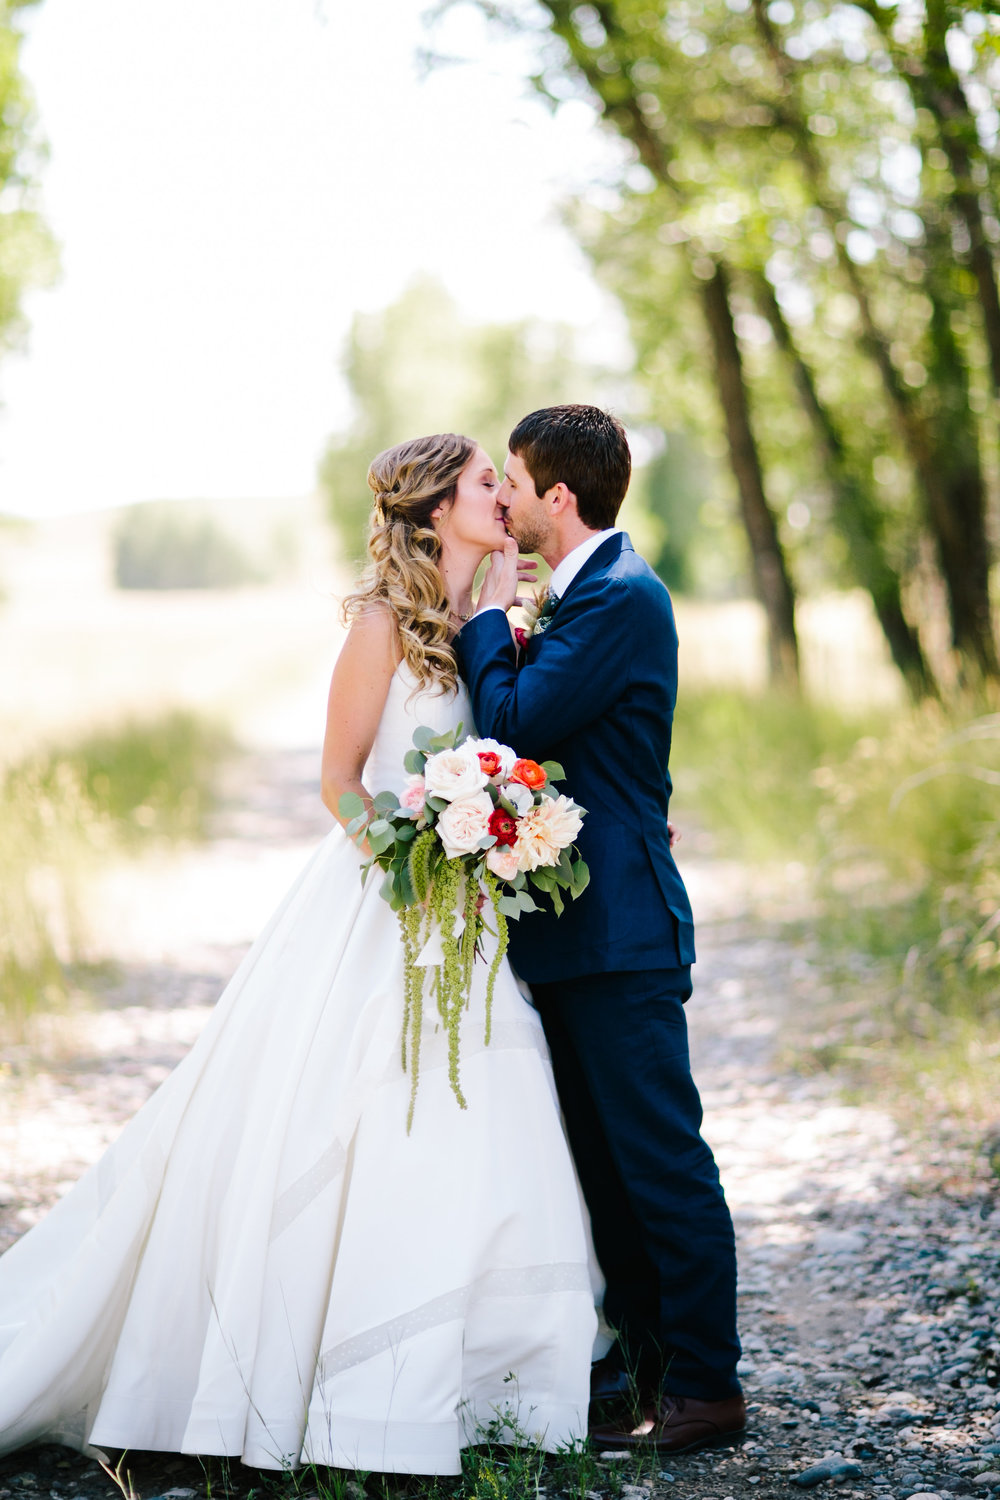 kellylemonphotography-JENA+CRAIG_WEDDING_previews-18.jpg